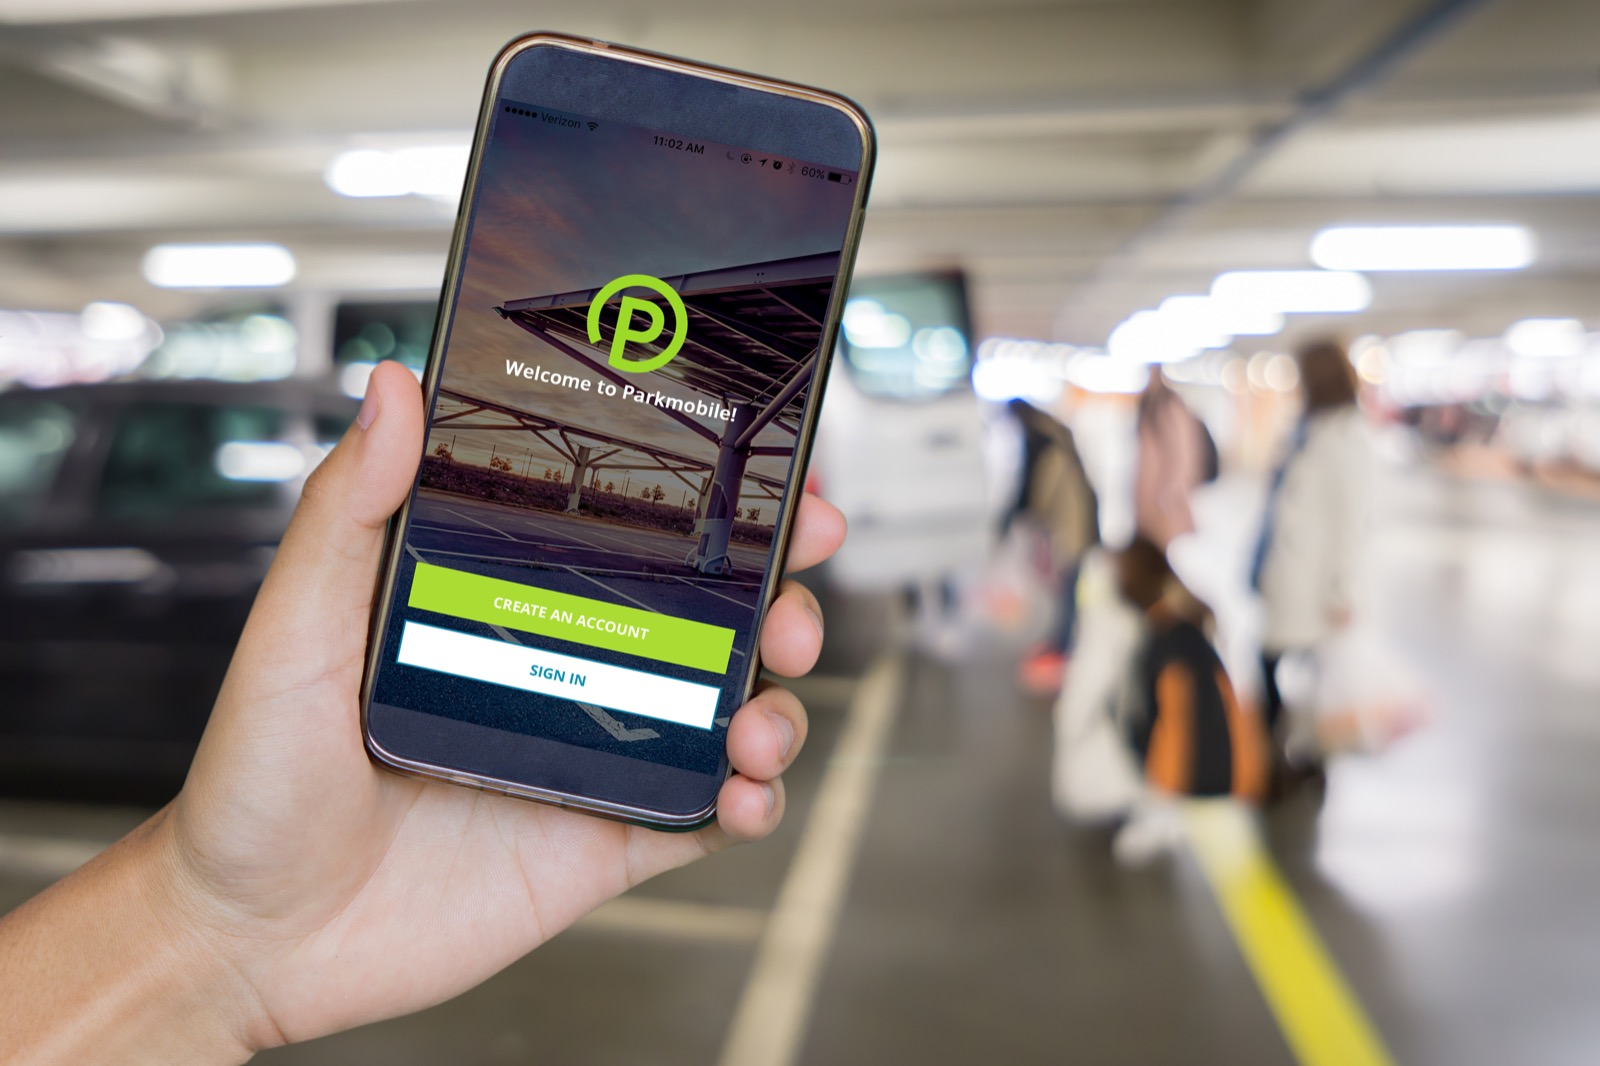 Bmw Garage Amsterdam : Bmw acquires parkmobile parking app to help tackle city traffic